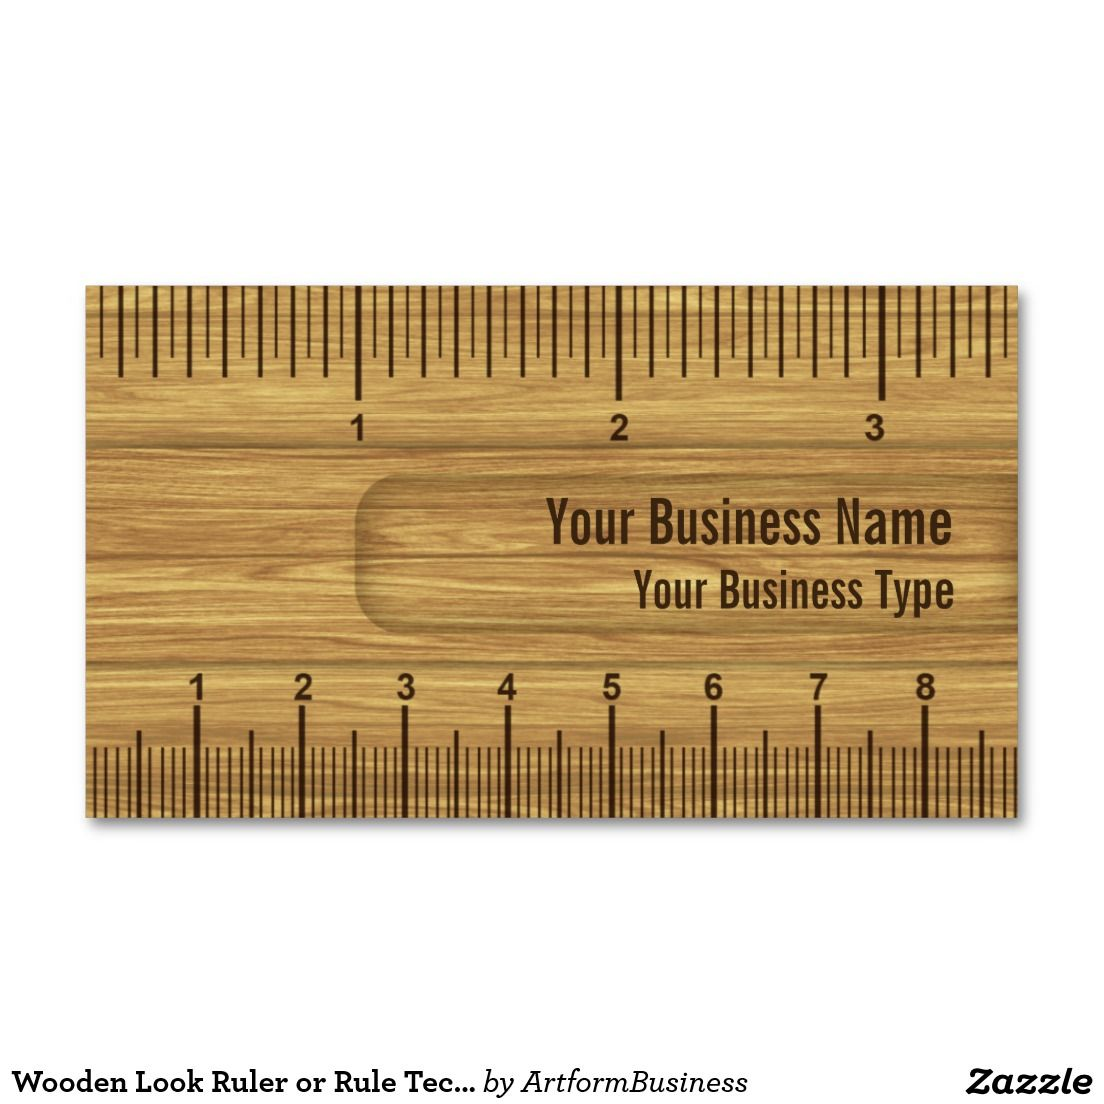 Wooden Look Ruler Rule Construction Or Carpenter Business Card